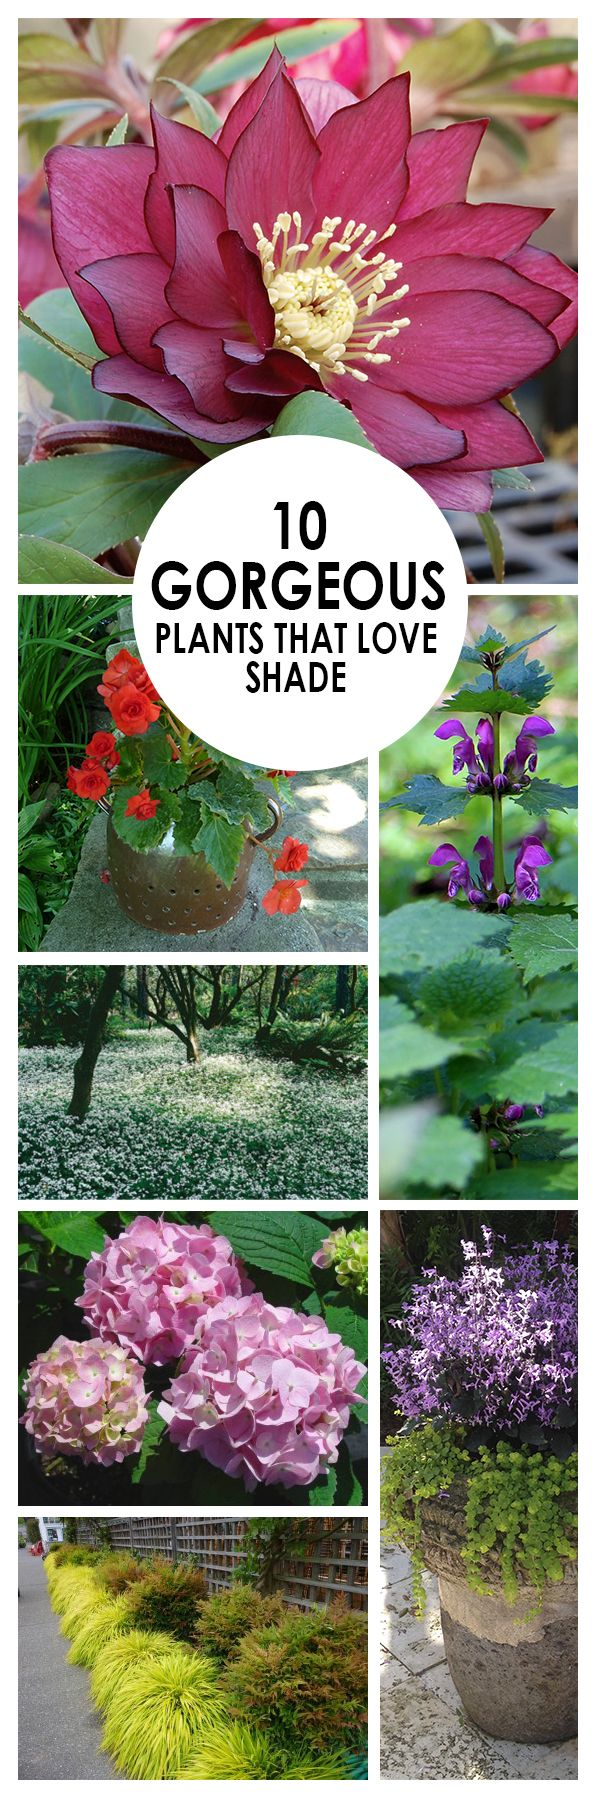 Gardening, home garden, garden hacks, garden tips and tricks, growing plants…